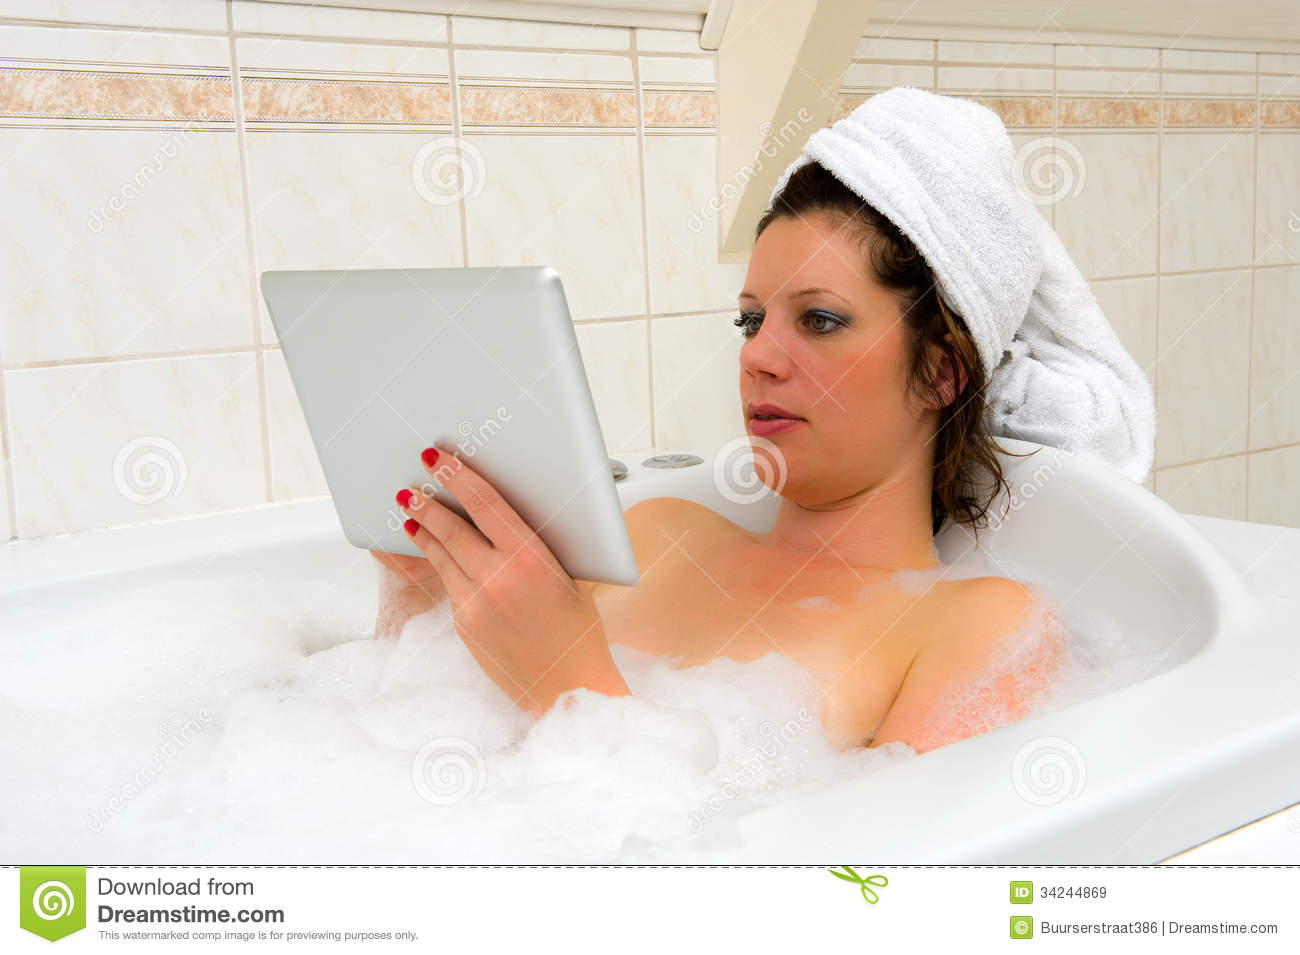 With ipad in bath royalty free stock images image 34244869 for Bathroom hot images